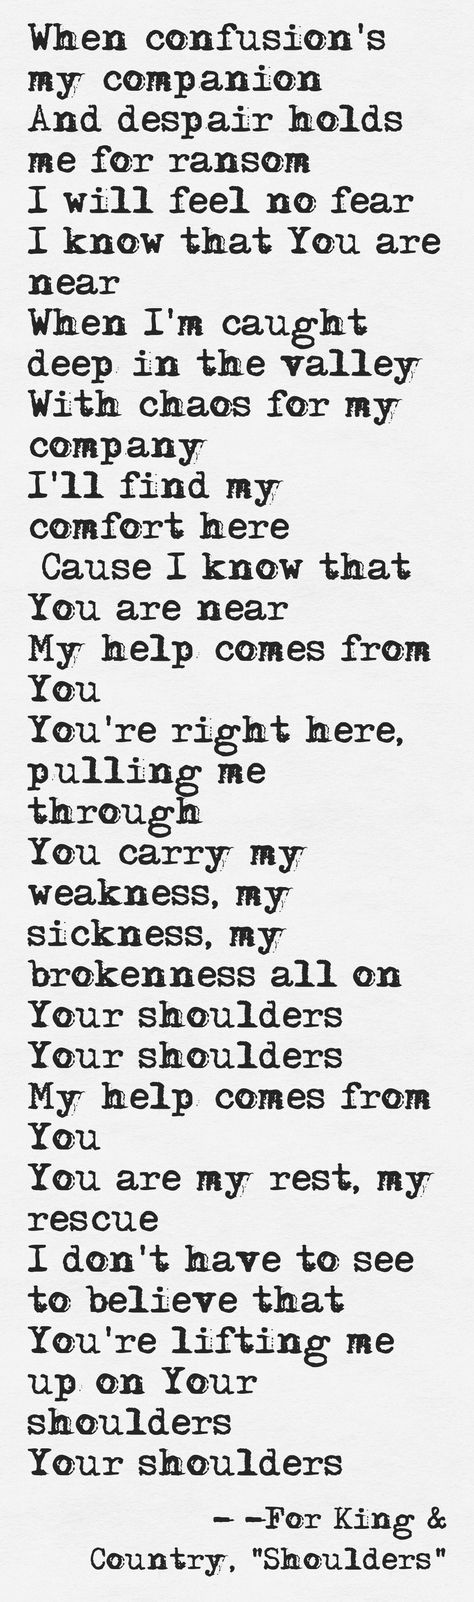 Lyric speechless lyrics israel houghton : 113 best for King and Country images on Pinterest | For king ...